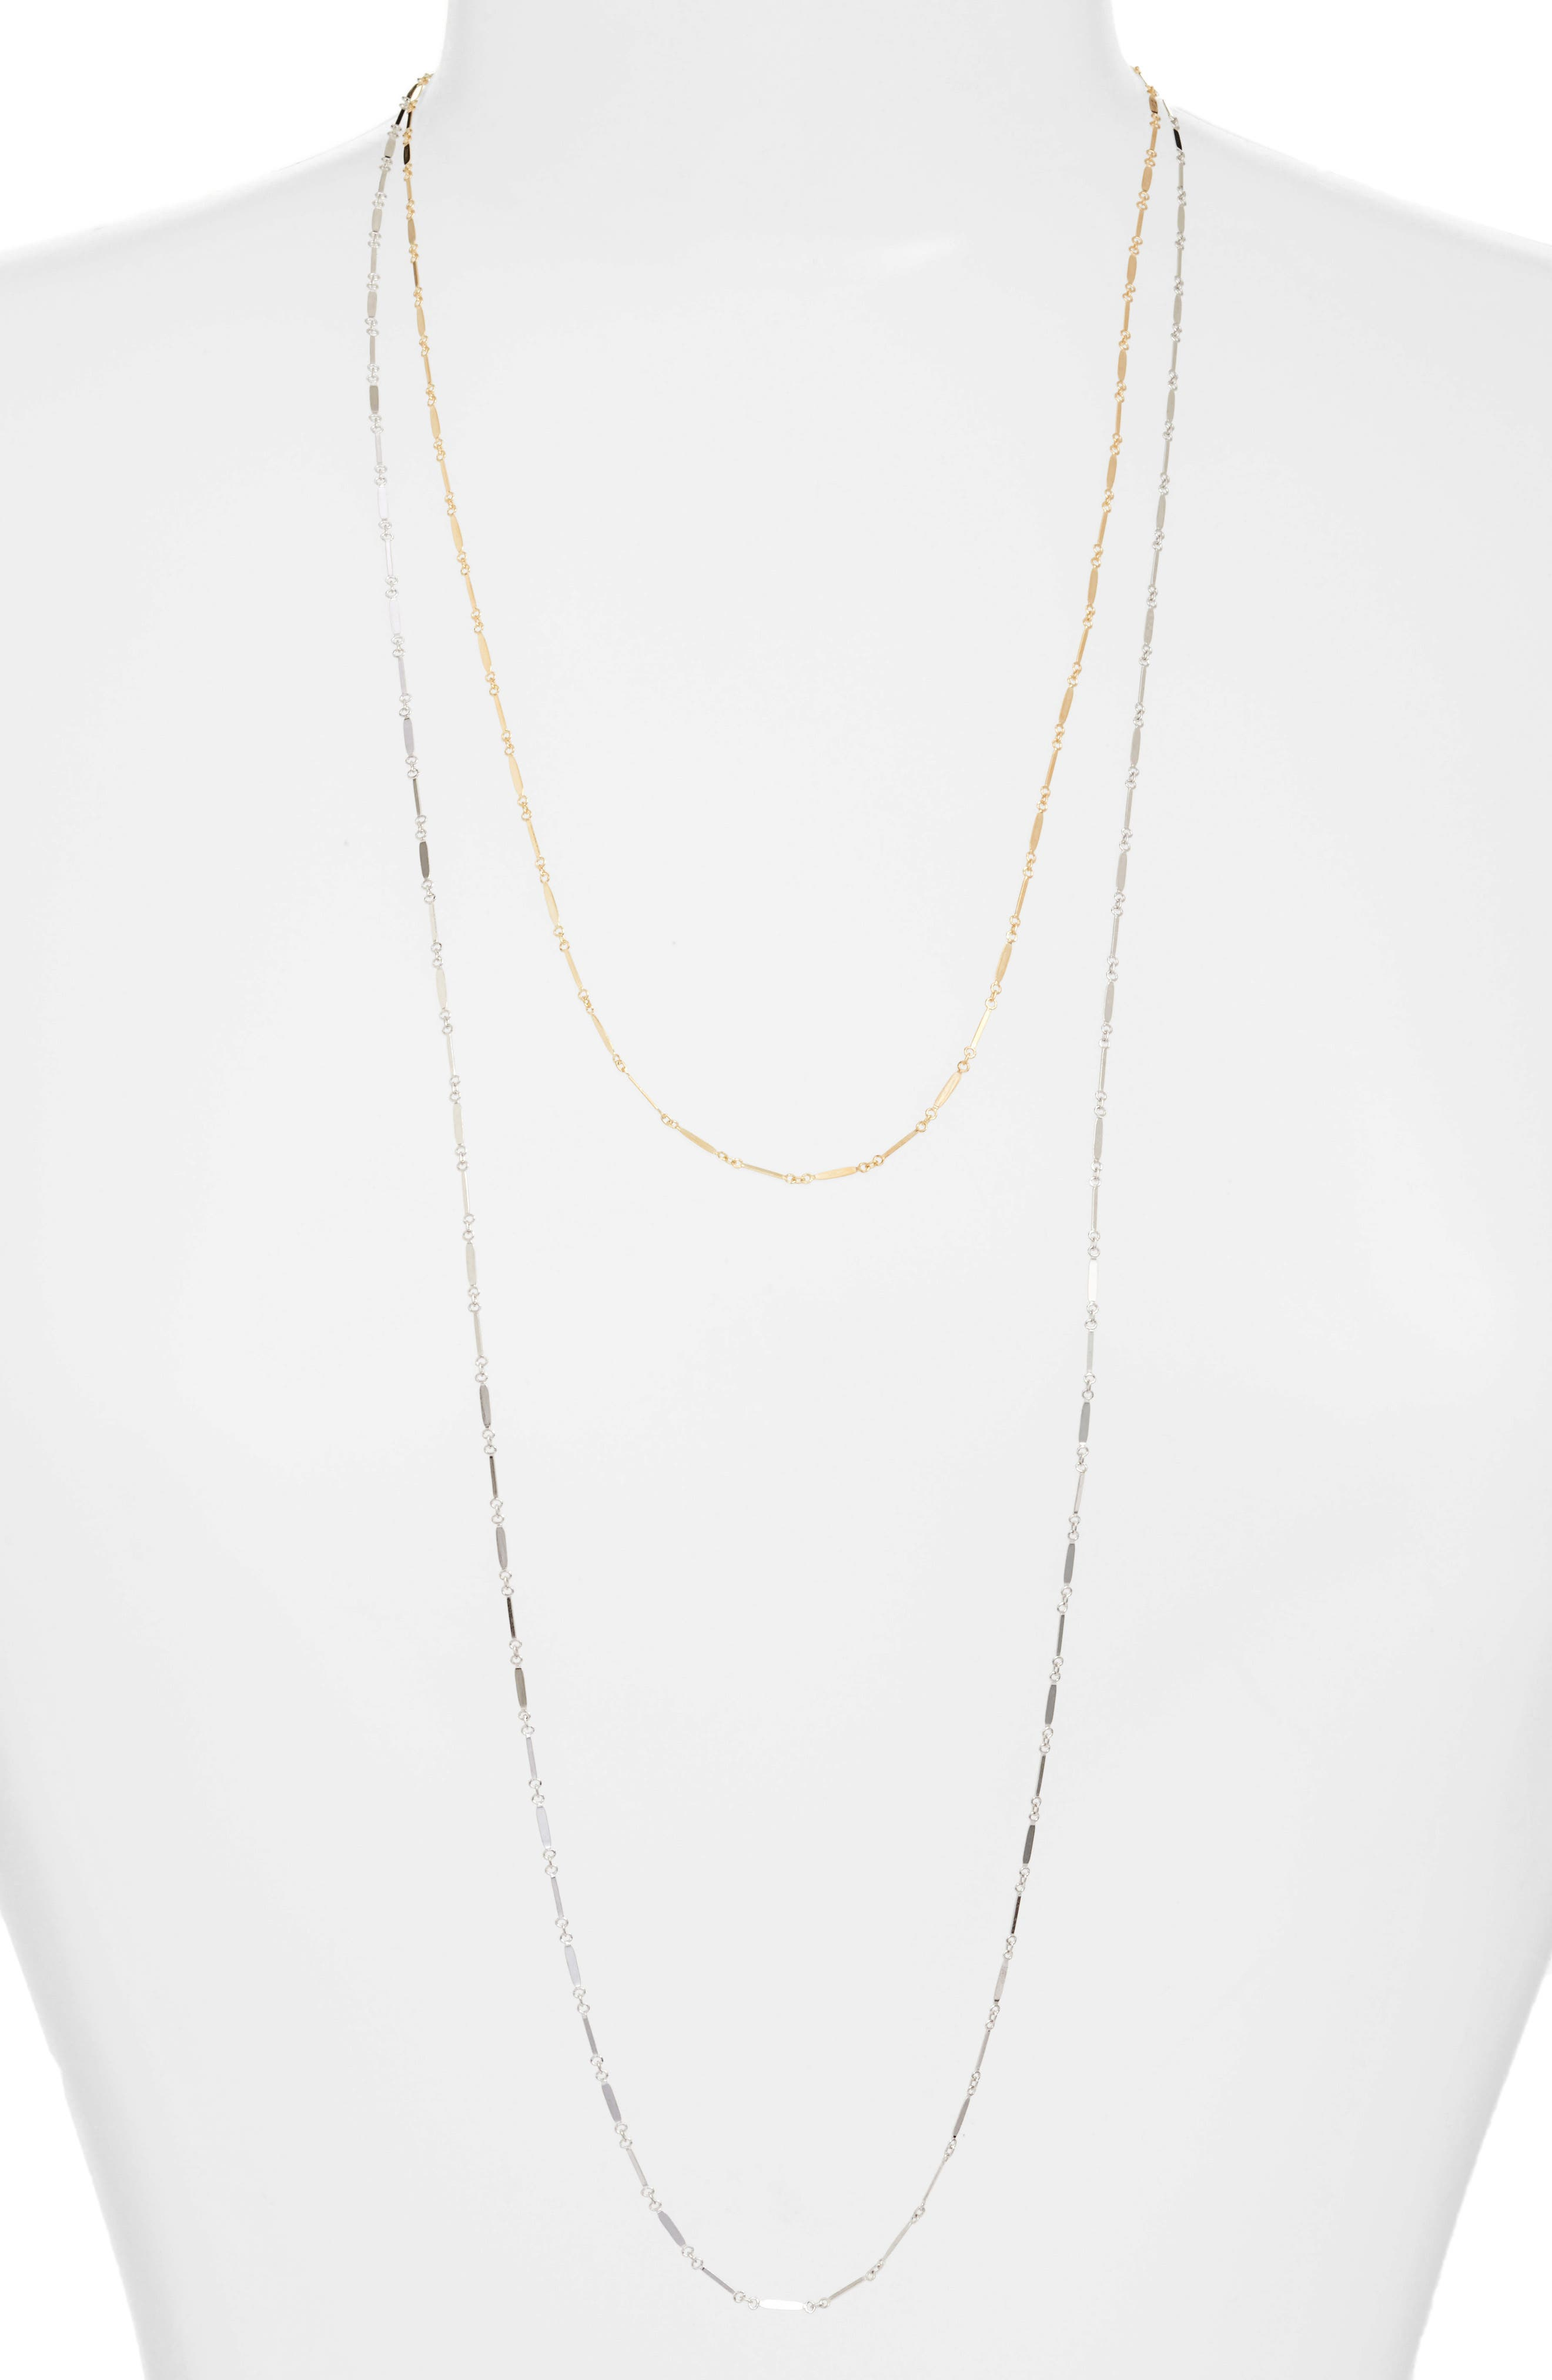 Two-Tone Mirror Multistrand Necklace,                         Main,                         color, Gold/ Silver